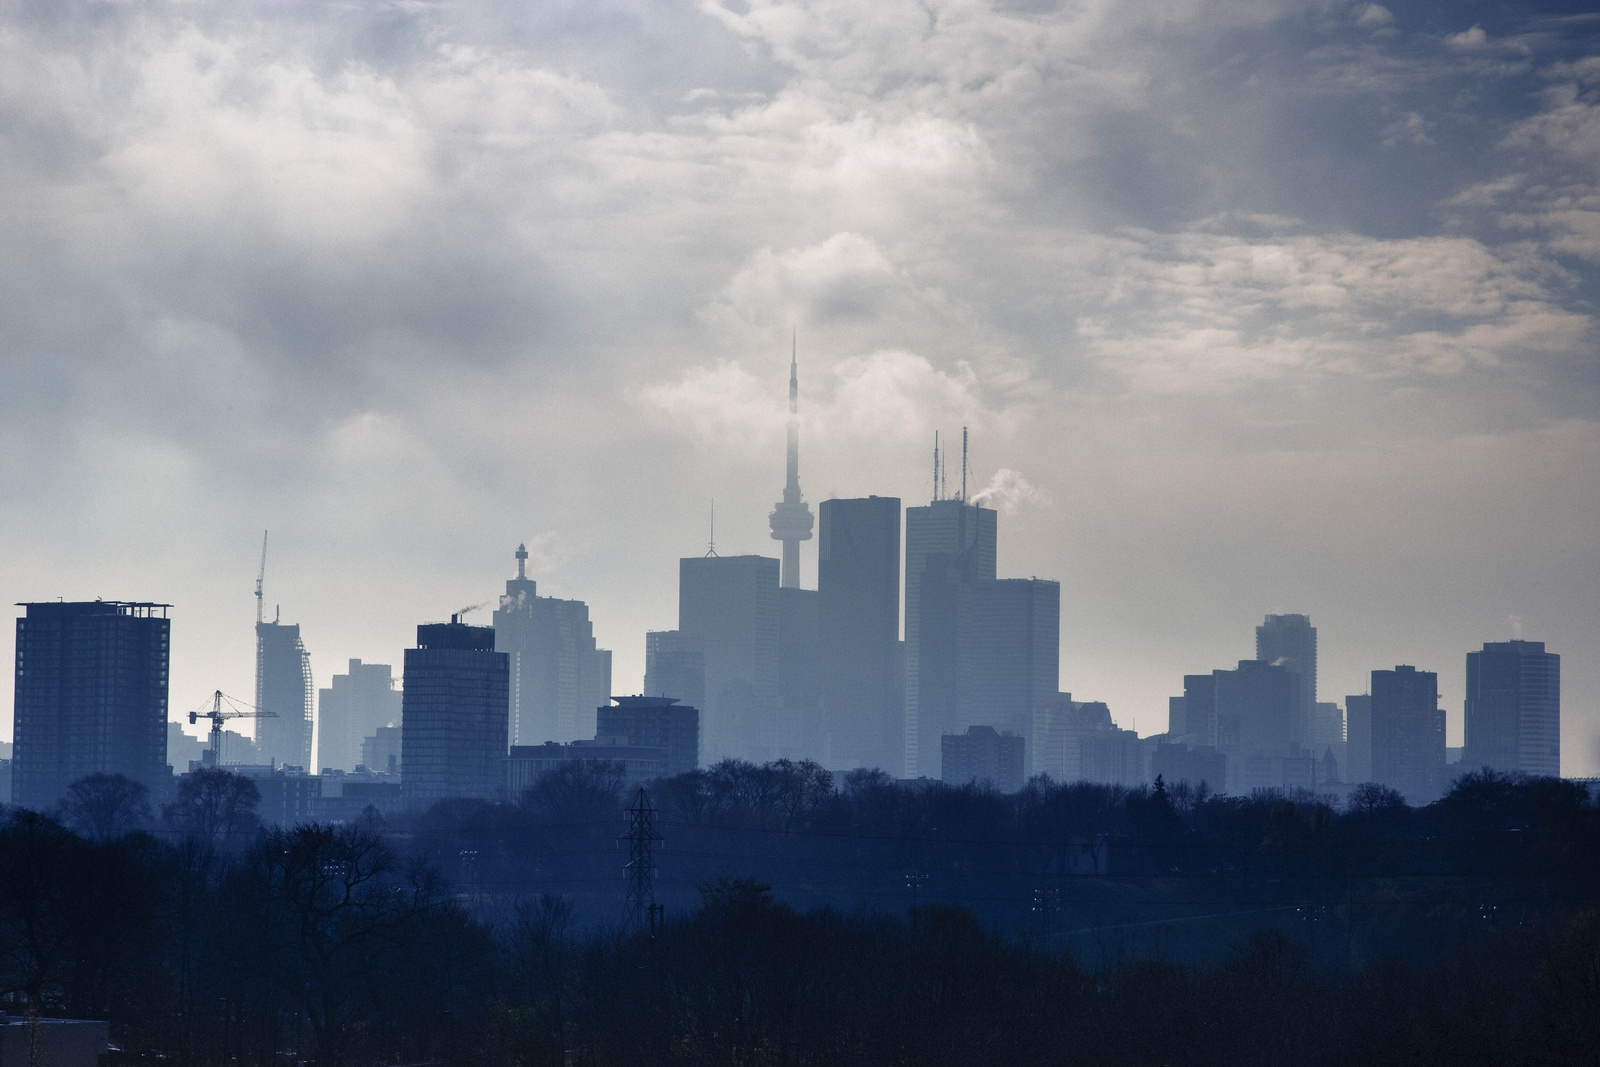 Special air quality alert issued for City of Toronto